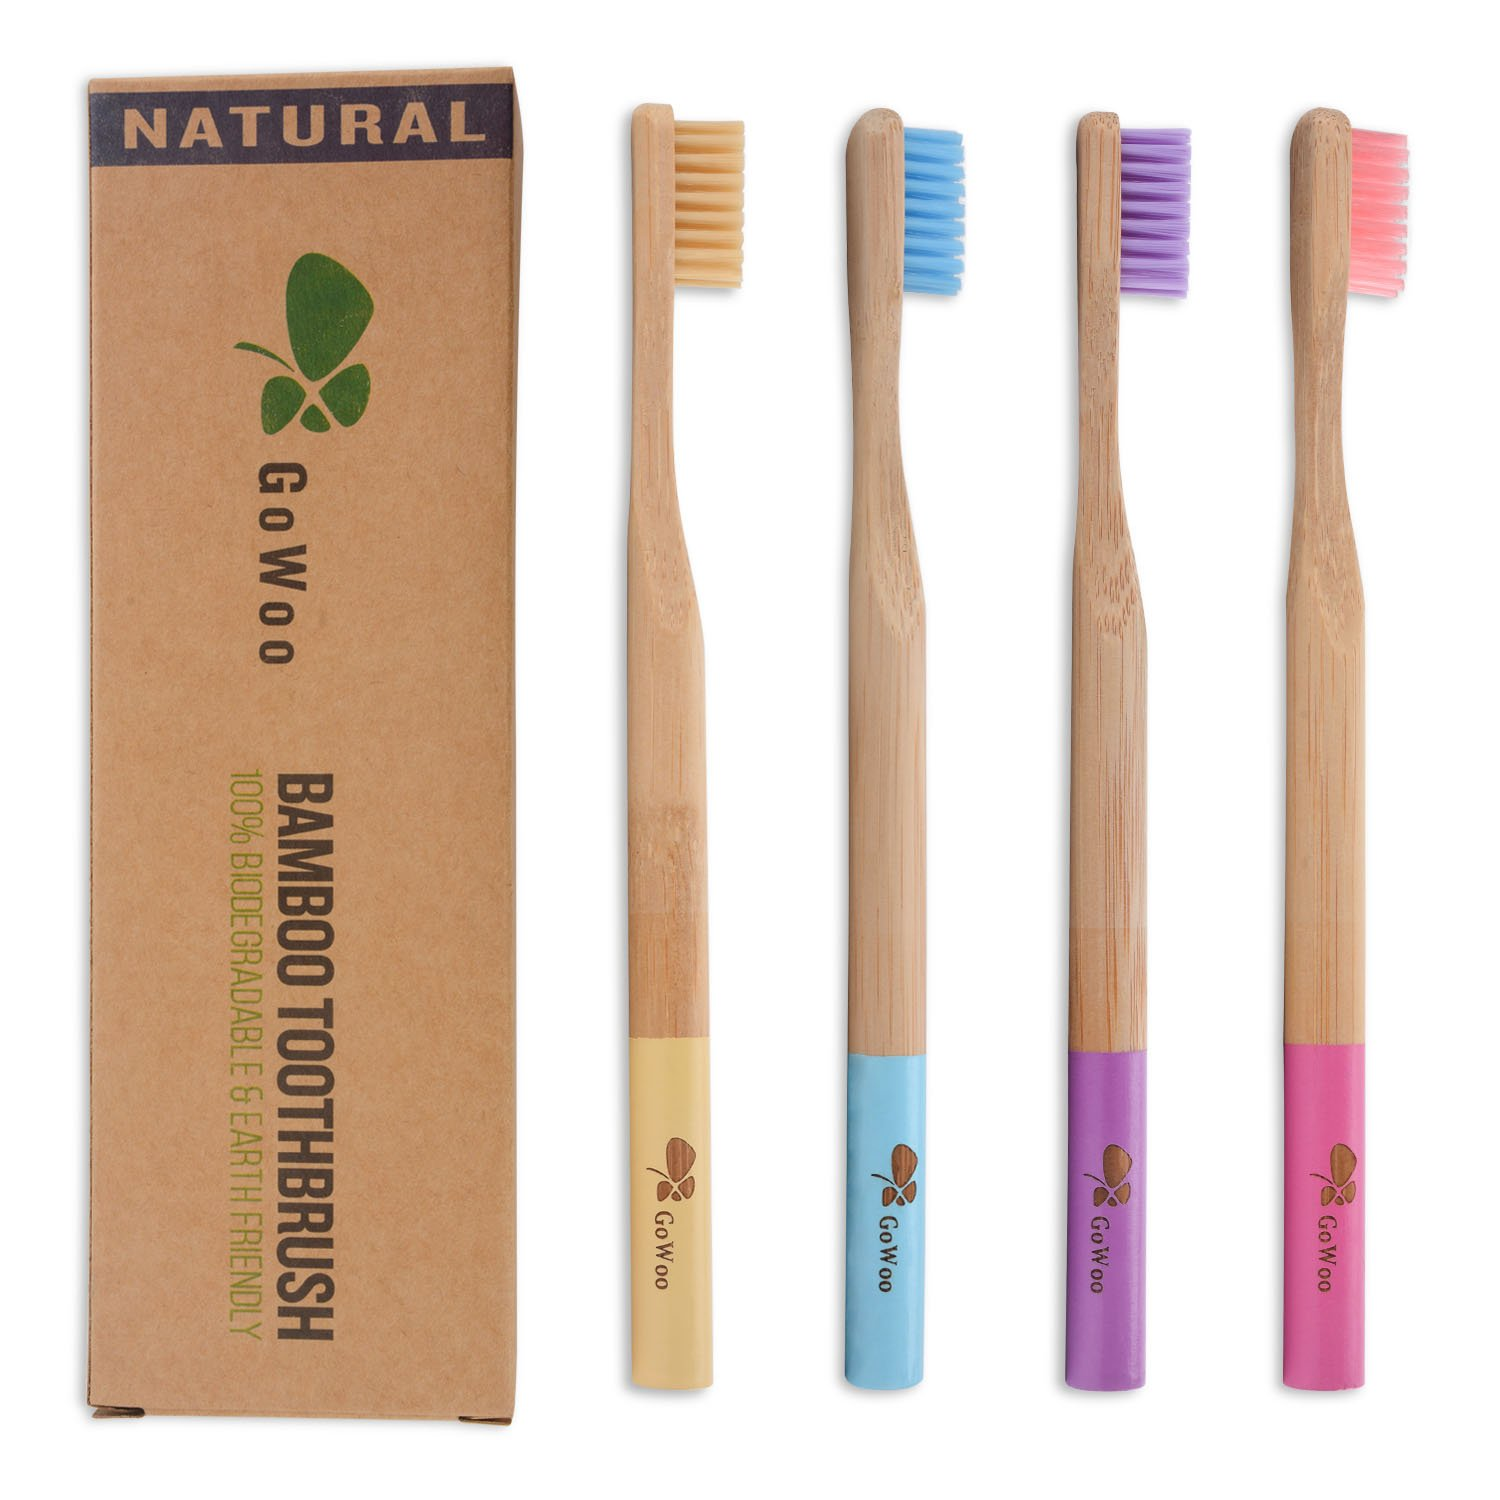 GoWoo 100% Natural Bamboo Toothbrush Soft – Organic Eco Friendly Toothbrushes With Soft Nylon Bristles, BPA-Free, Biodegradable, Dental Care Set for Men and Women, Pack Of 4, Rainbow Color